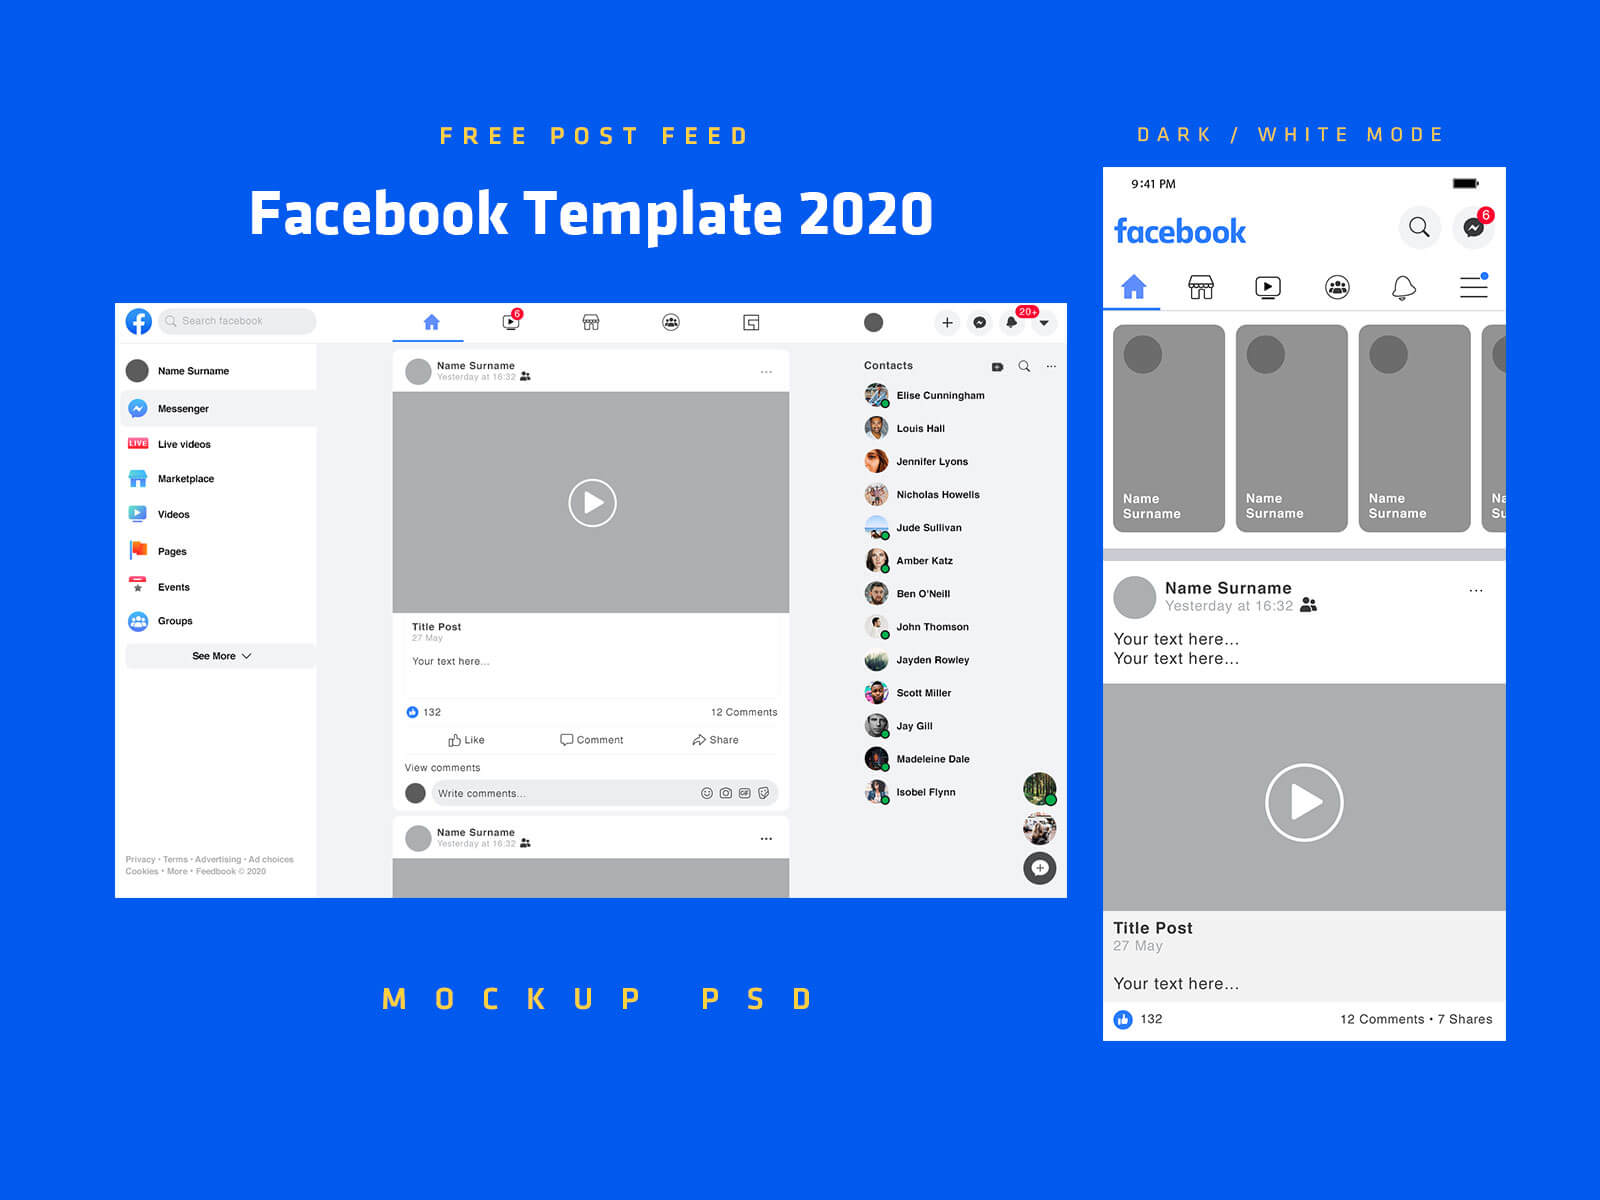 Free-Mobile-&-Desktop-Facebook-Post-Template-2020-Mockup-PSD-White-Mode